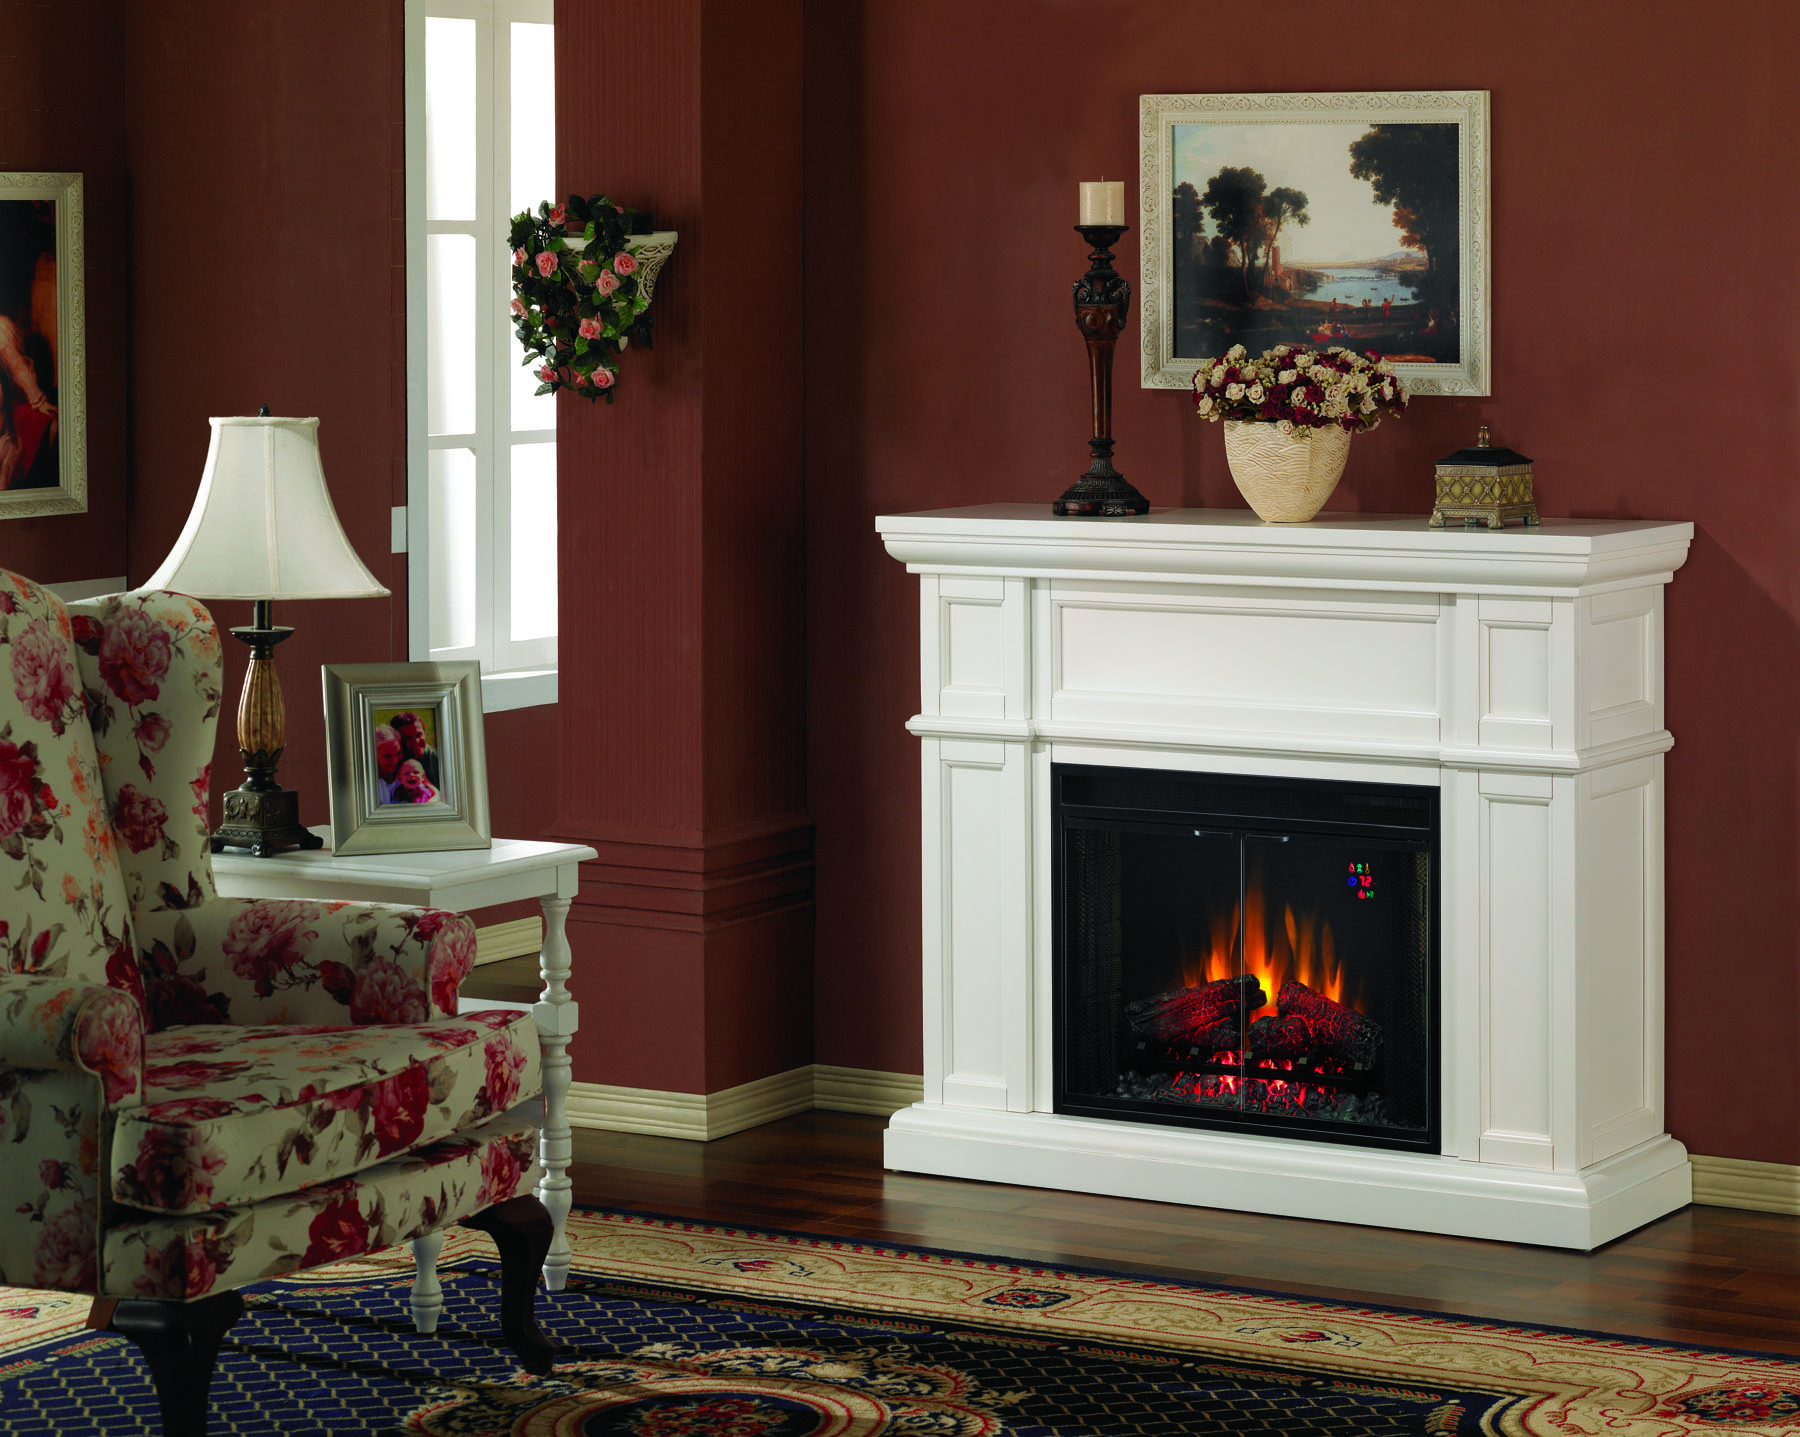 Gas Vs Electric Fireplace Pros And Cons The Pros And Cons Of Having An Electric Fireplace